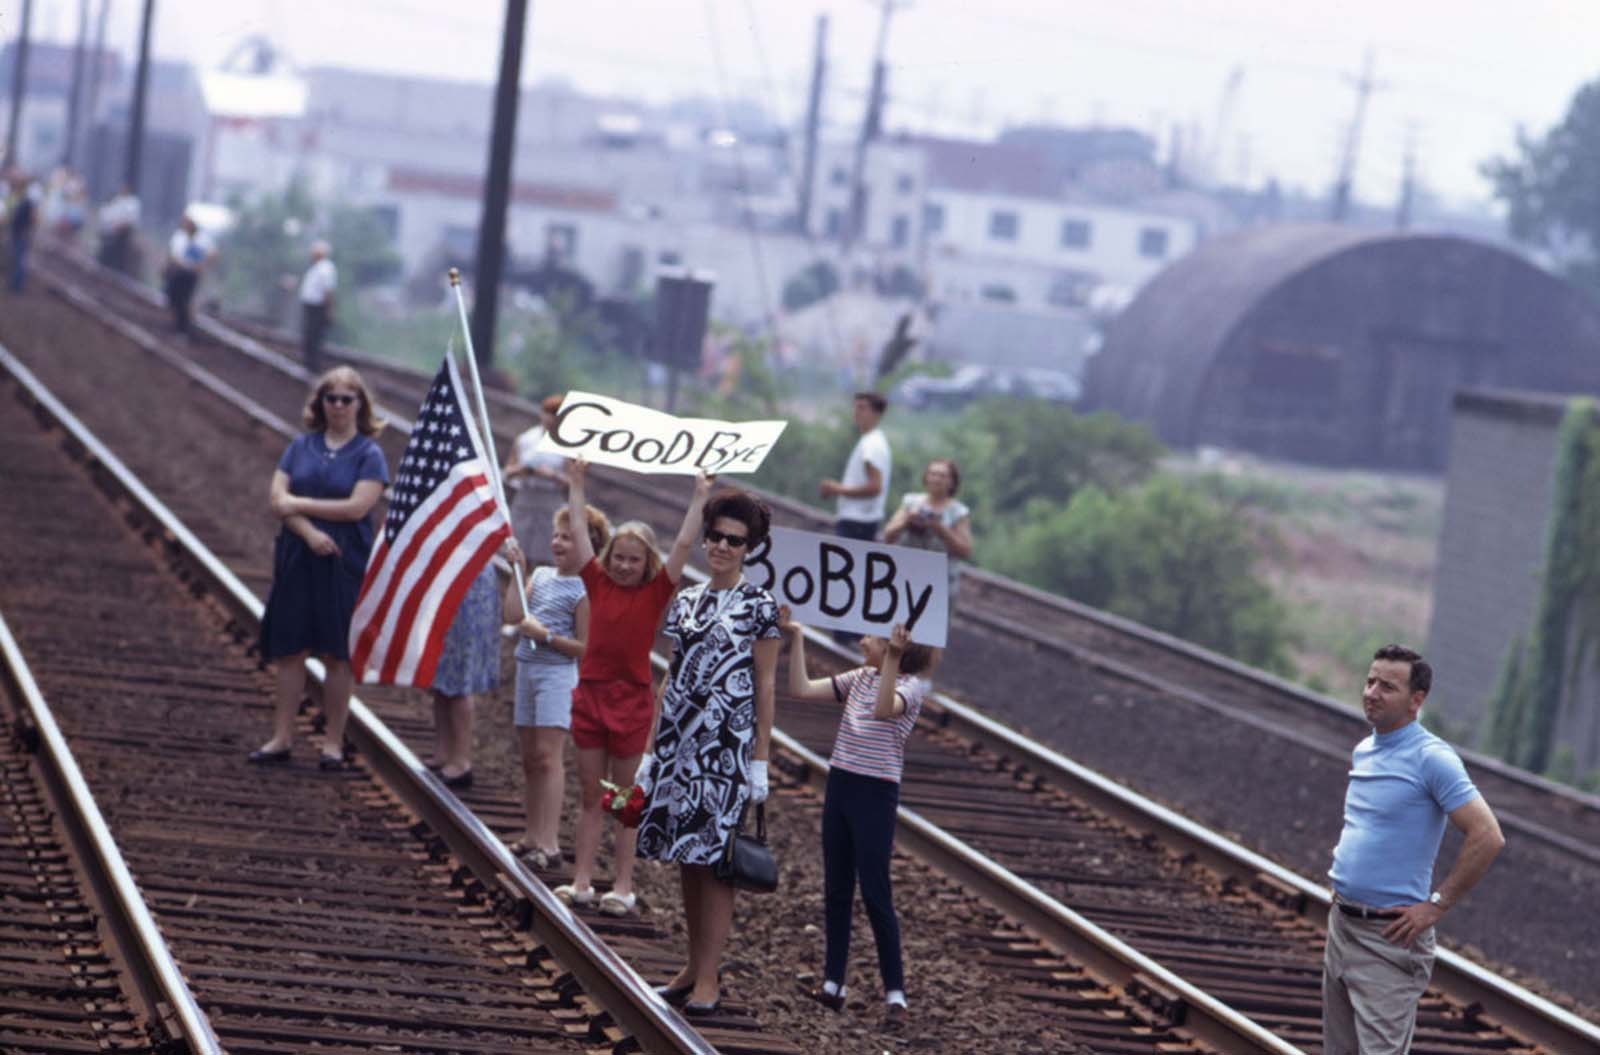 Mourners line the tracks to bid farewell to Robert F. Kennedy as his funeral train passes on its way from New York City to Washington, D.C., on June 8, 1968.